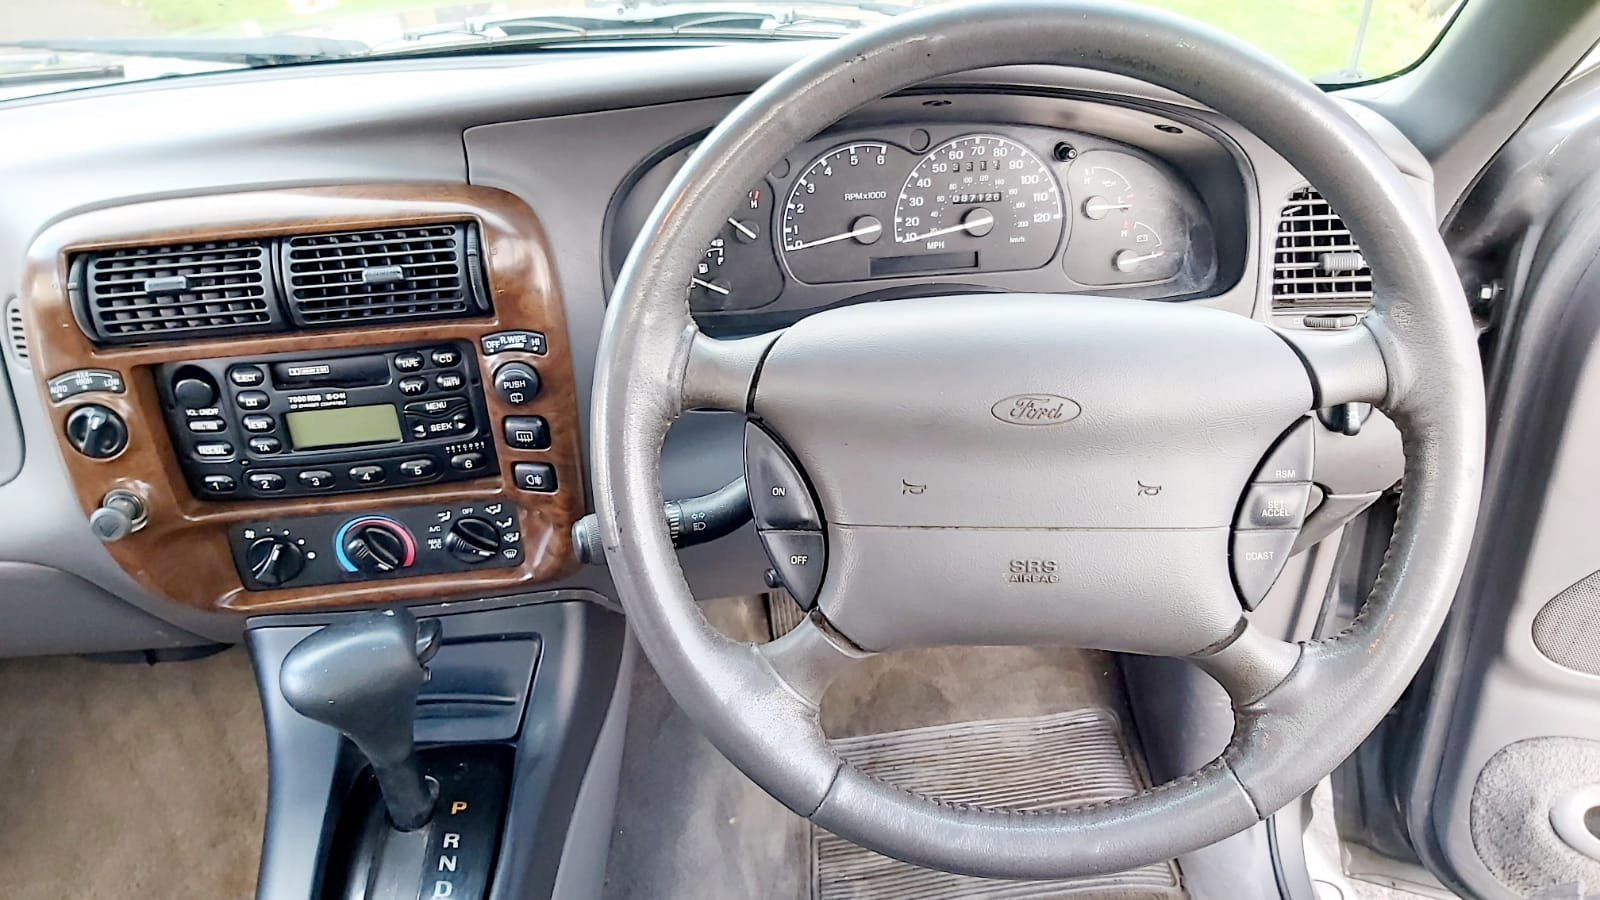 1999 FORD EXPLORER 4.0 AUTOMATIC LIMITED EDITION THE NORTH FACE For Sale (picture 5 of 6)